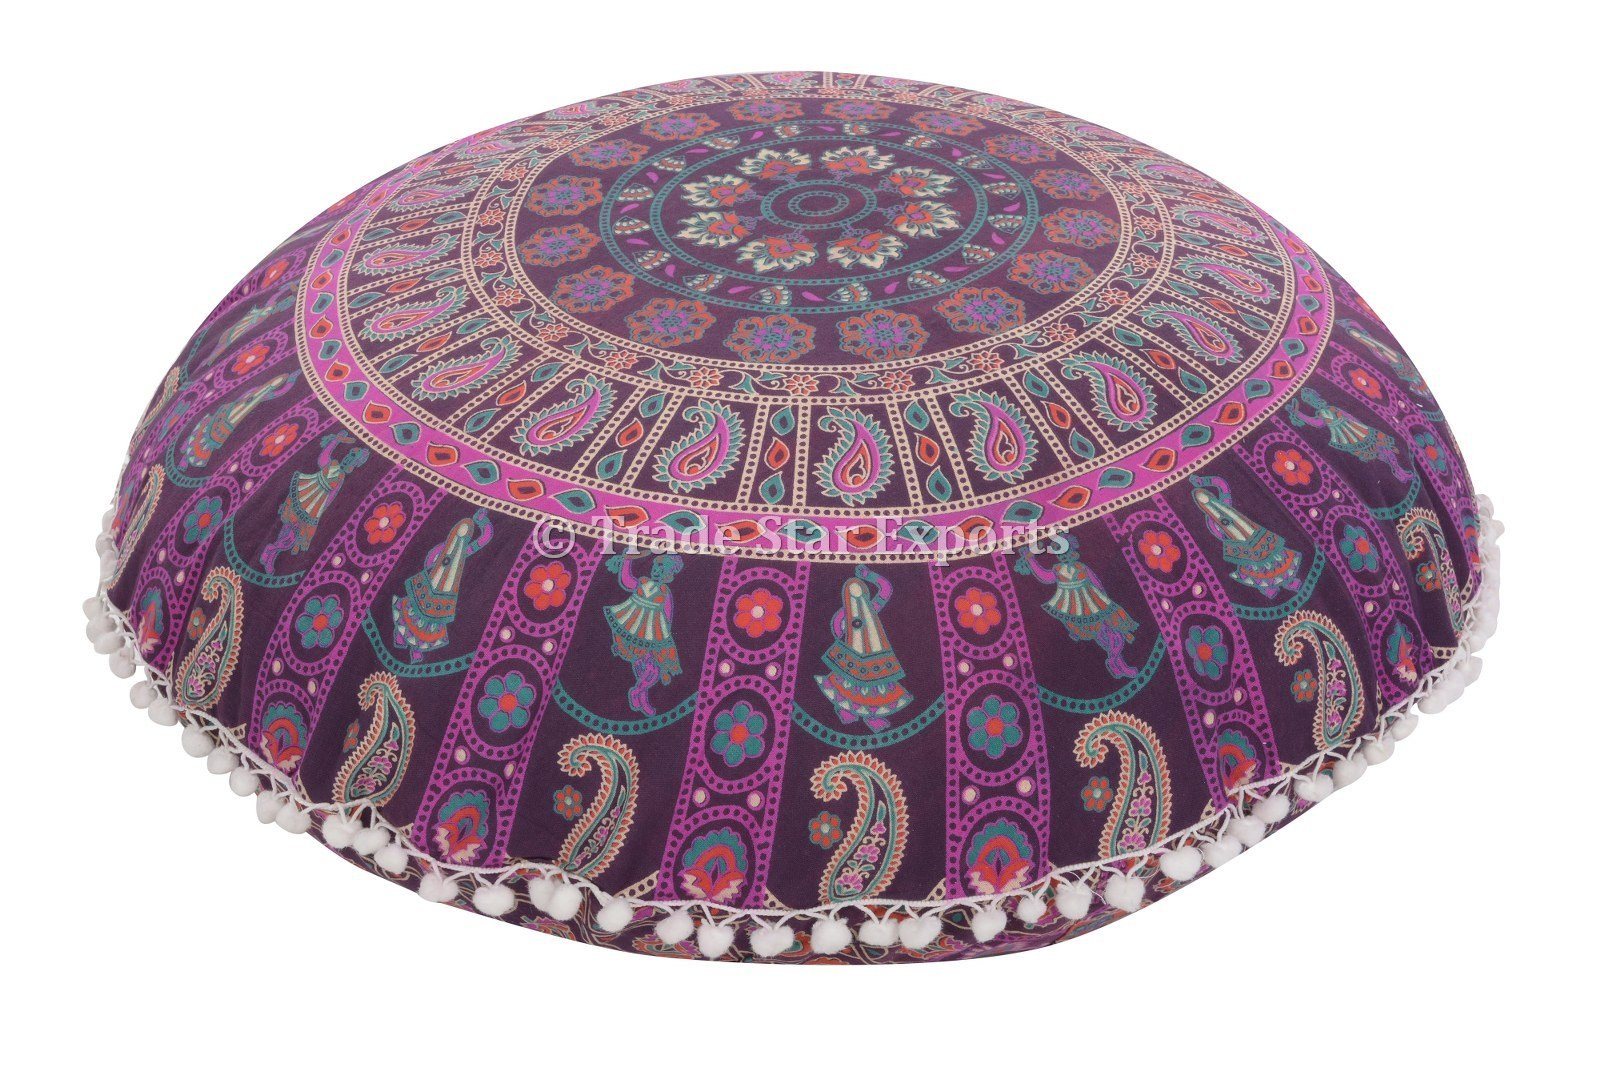 Large 32'' Round Pillow Cover, Decorative Mandala Pillow Sham, Indian Bohemian Ottoman Poufs, Pom Pom Pillow Cases, Outdoor Cushion Cover (Pattern 18)